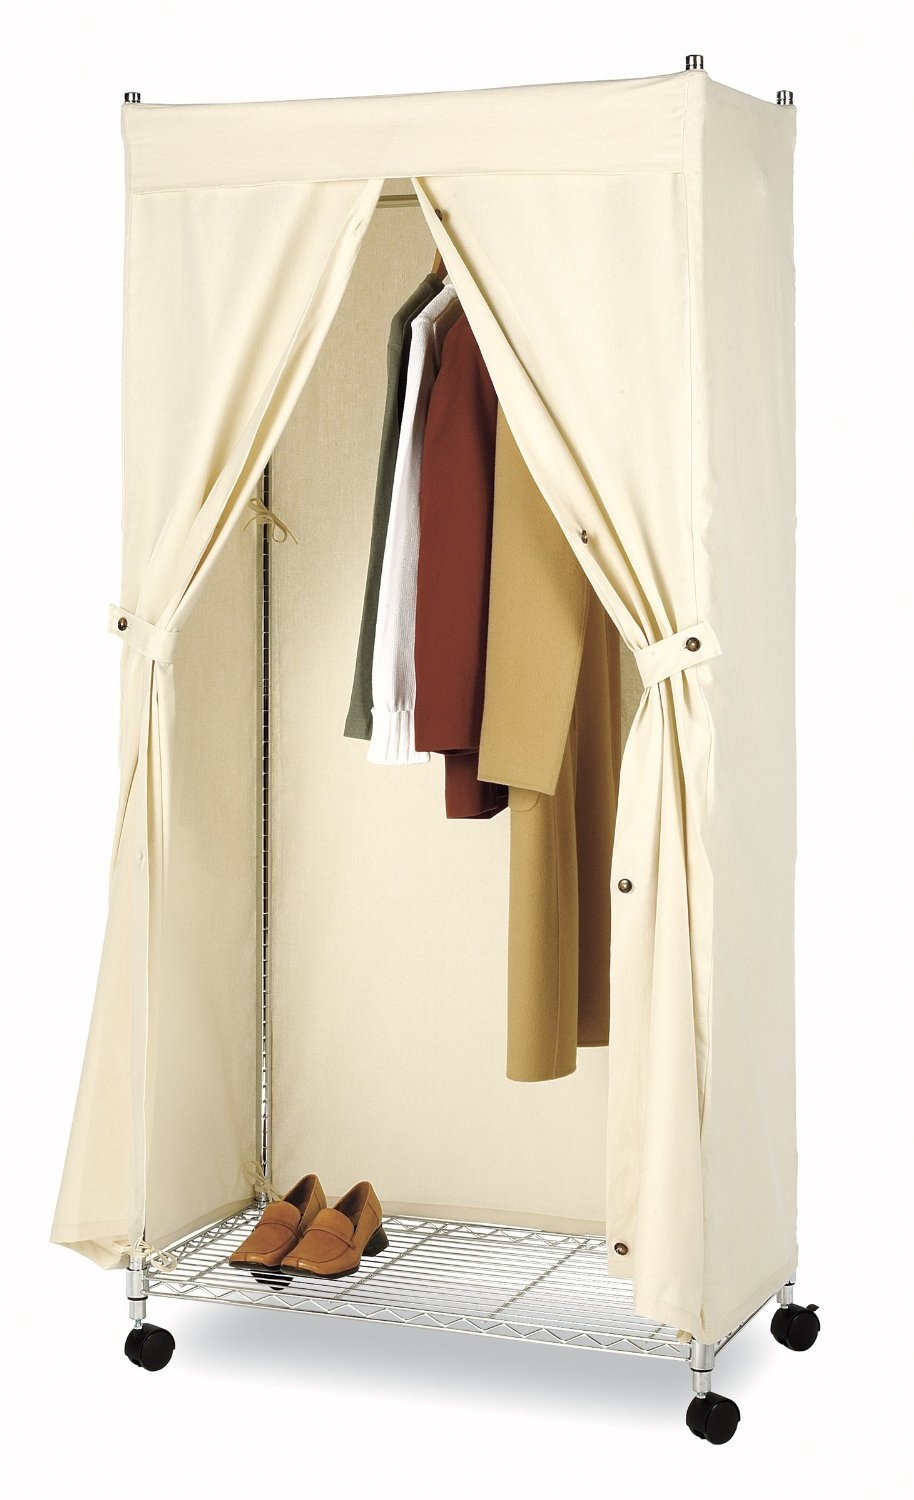 New Reinforced Large Portable Closet Folding Clothes Wardrobe Regarding Mobile Wardrobe Cabinets (Image 15 of 25)